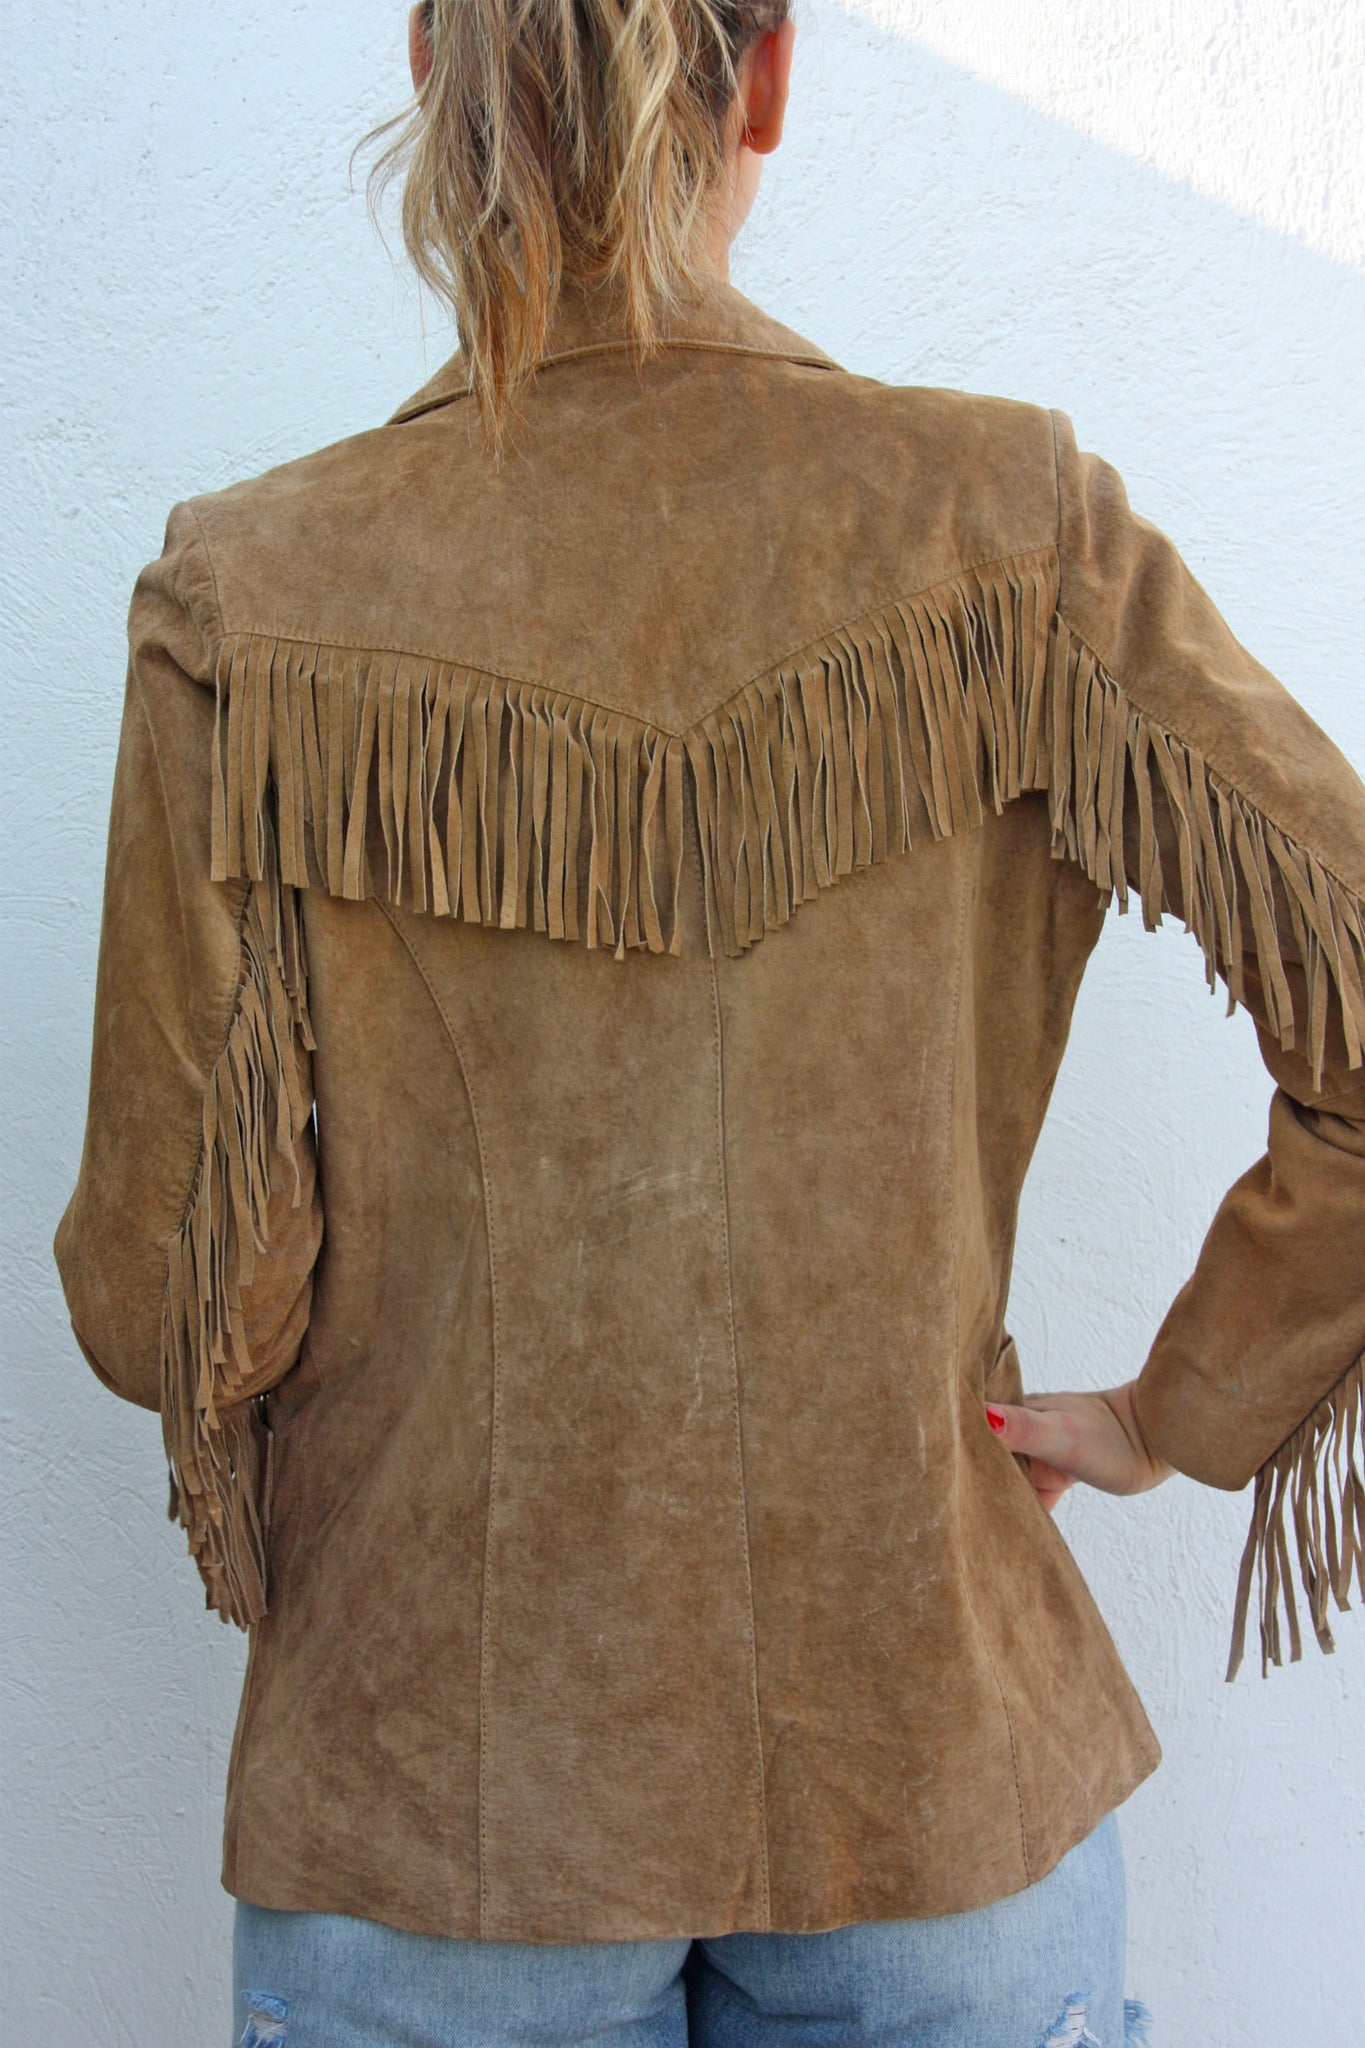 Tan suede vintage jacket - Shop SoLovesVintage